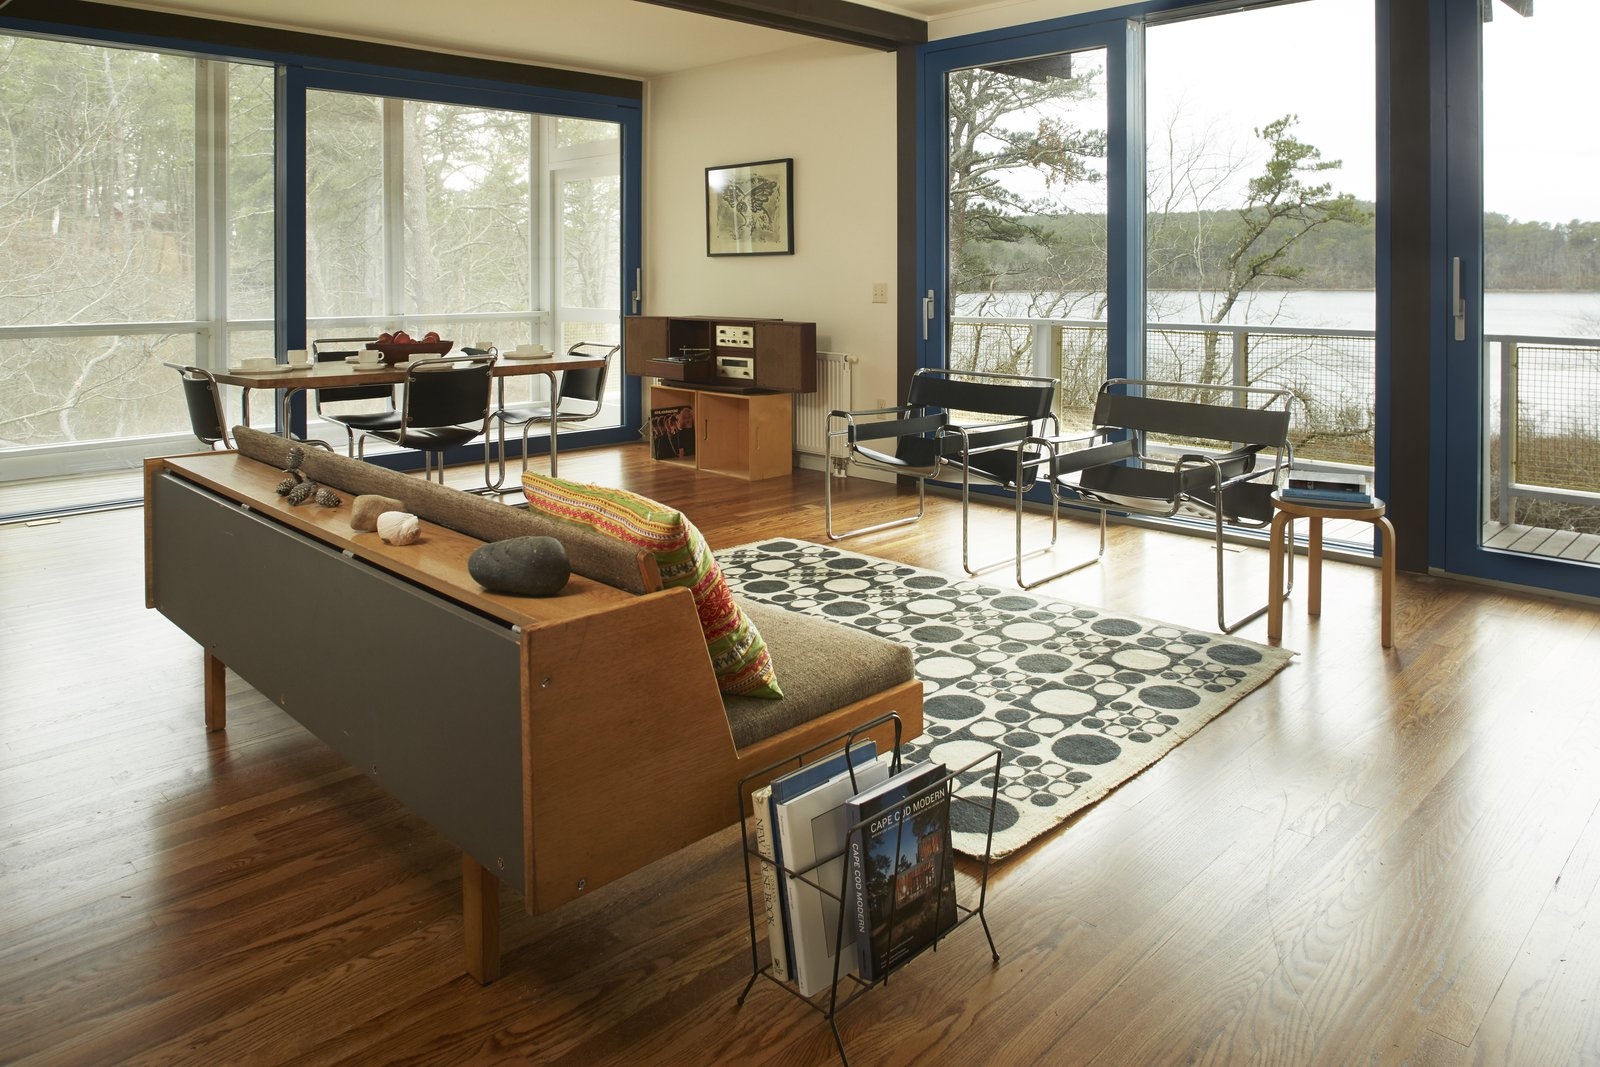 Living Room, Sofa, Chair, Table, Stools, Storage, Media Cabinet, Medium Hardwood Floor, and Rug Floor The home is perched above the pond and features stunning views of the natural surroundings.  Photo 6 of 9 in Experience Cape Cod Modern by Staying at the Midcentury Weidlinger House